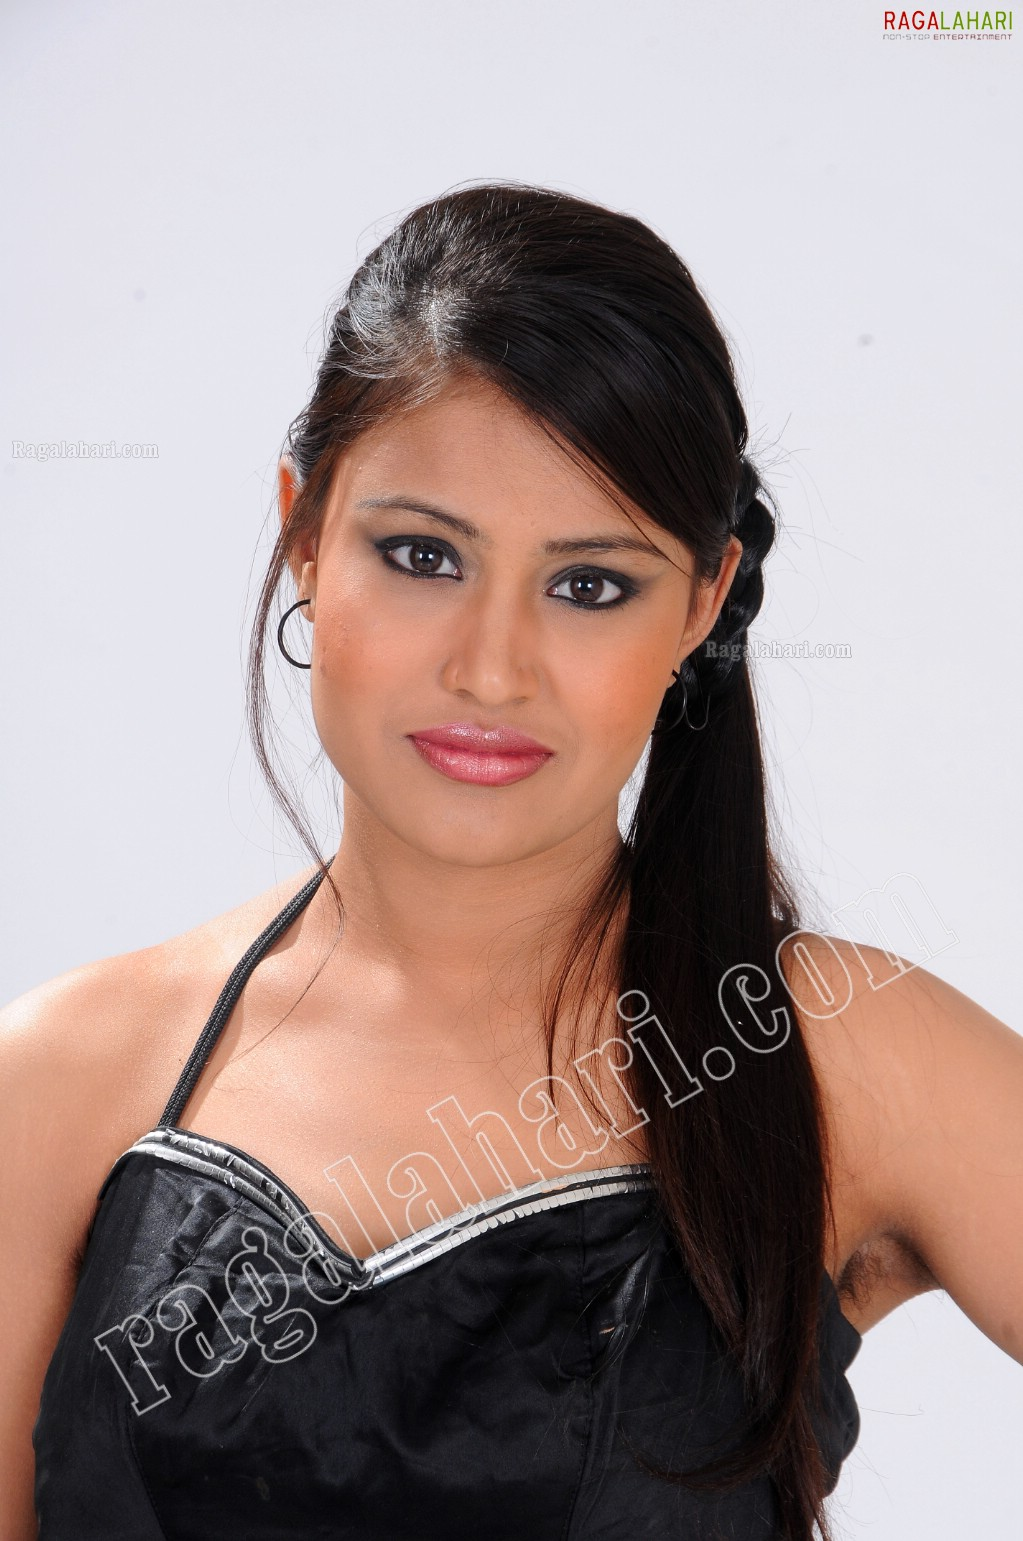 assamese hairy pussy and armpits image